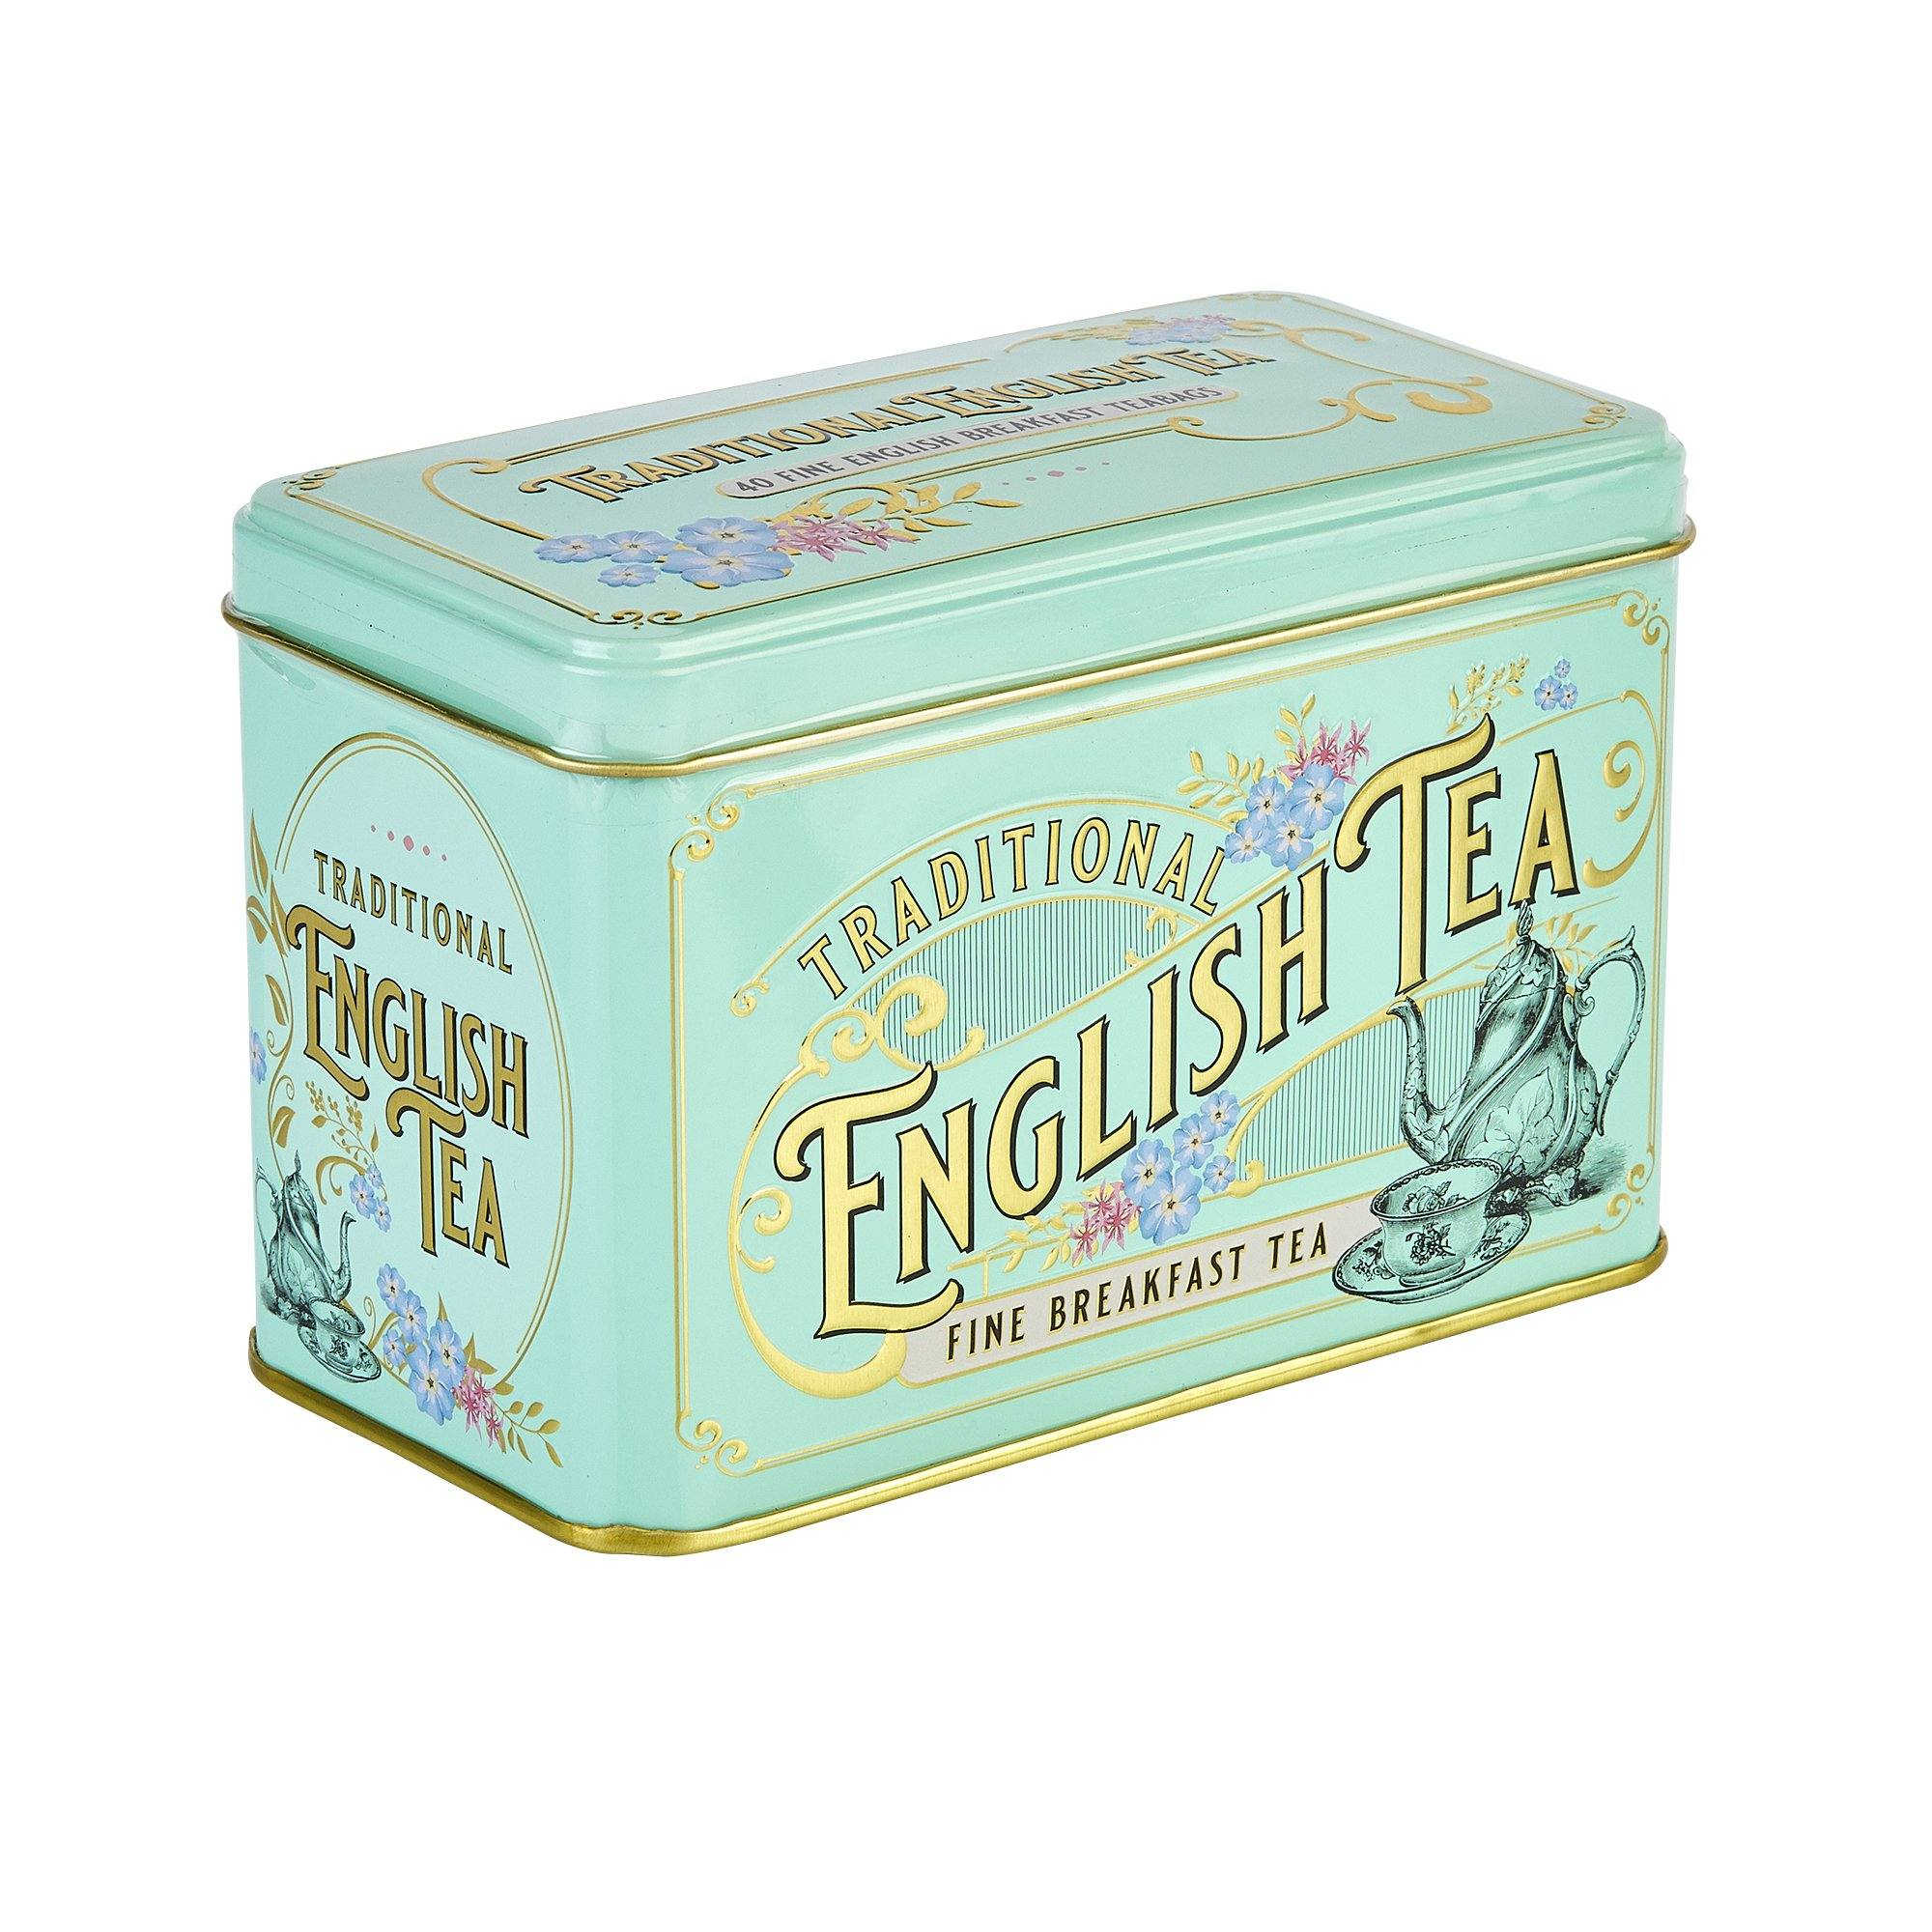 Vintage Victorian Tea Tin with 40 English Breakfast teabags Black Tea New English Teas